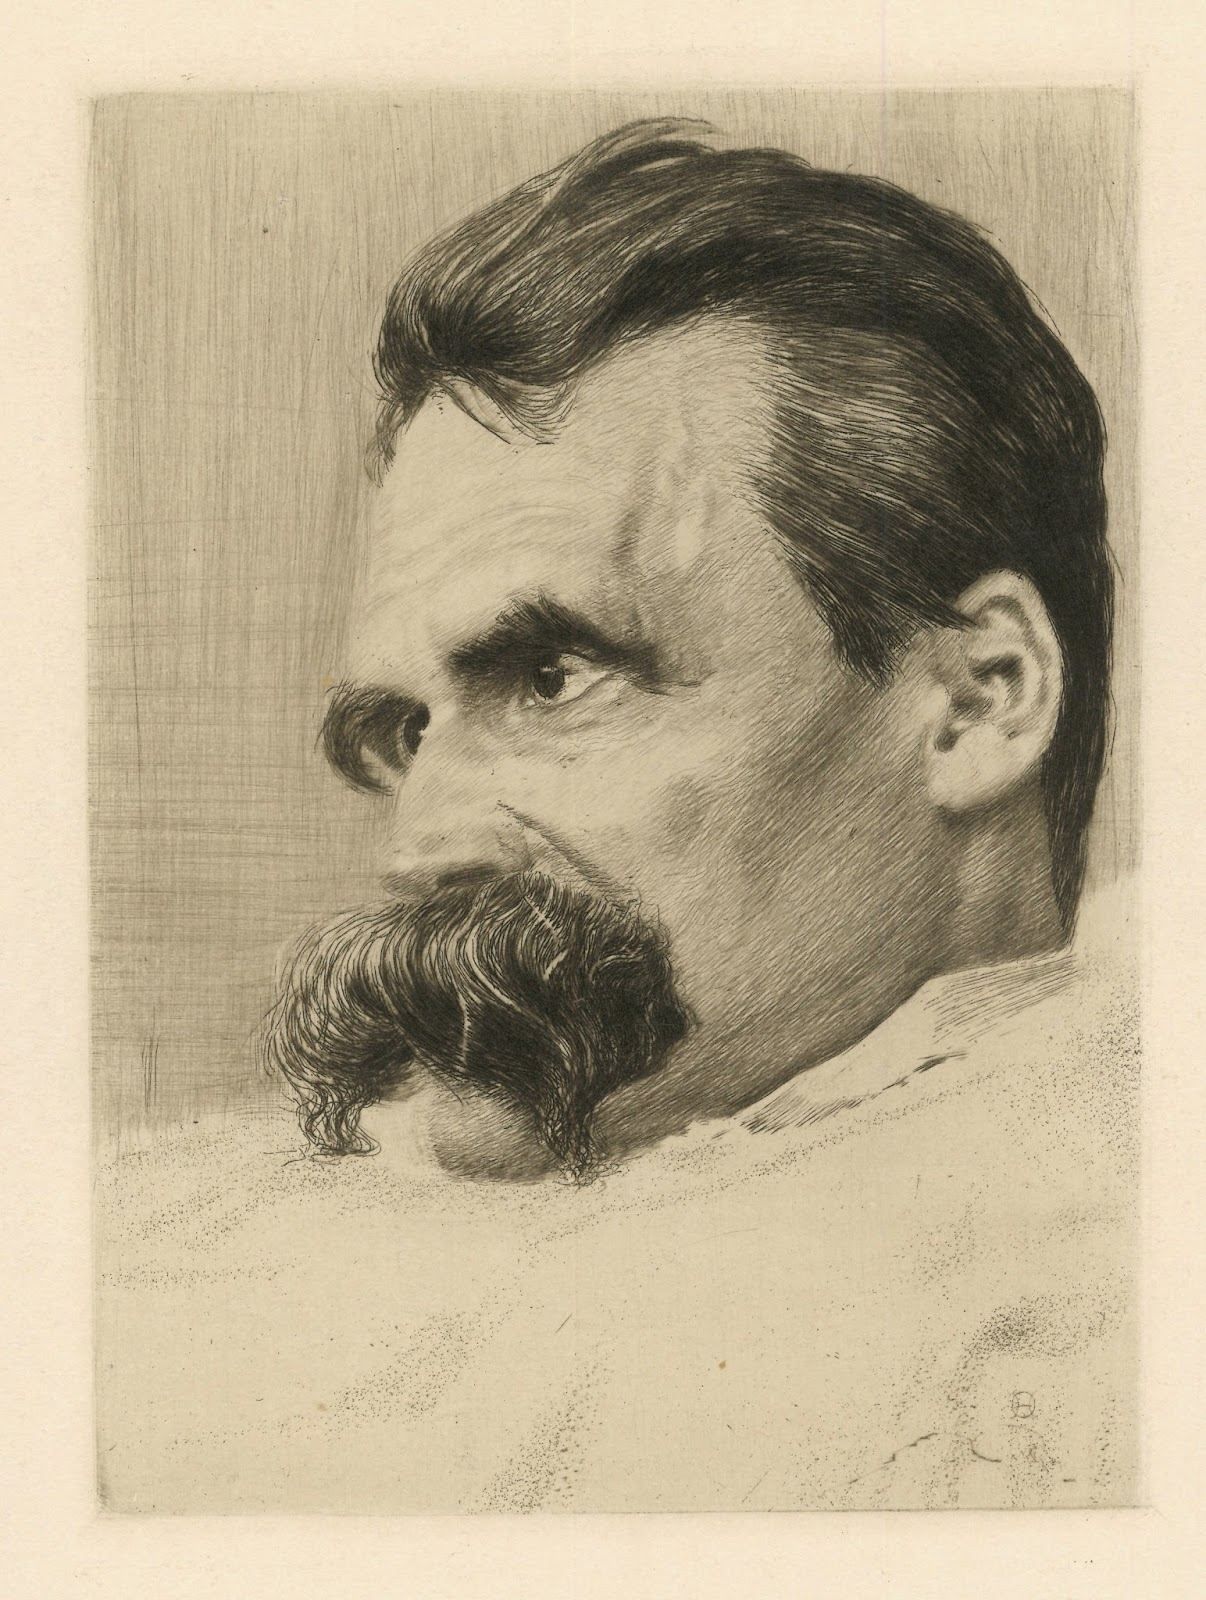 friedrich nietzsche essays Friedrich nietzsche genealogy of morals essay 10: creative writing oca posted on sunday, 15 april 2018 by @kennedy_rhcp i have to do my essays and science fair.